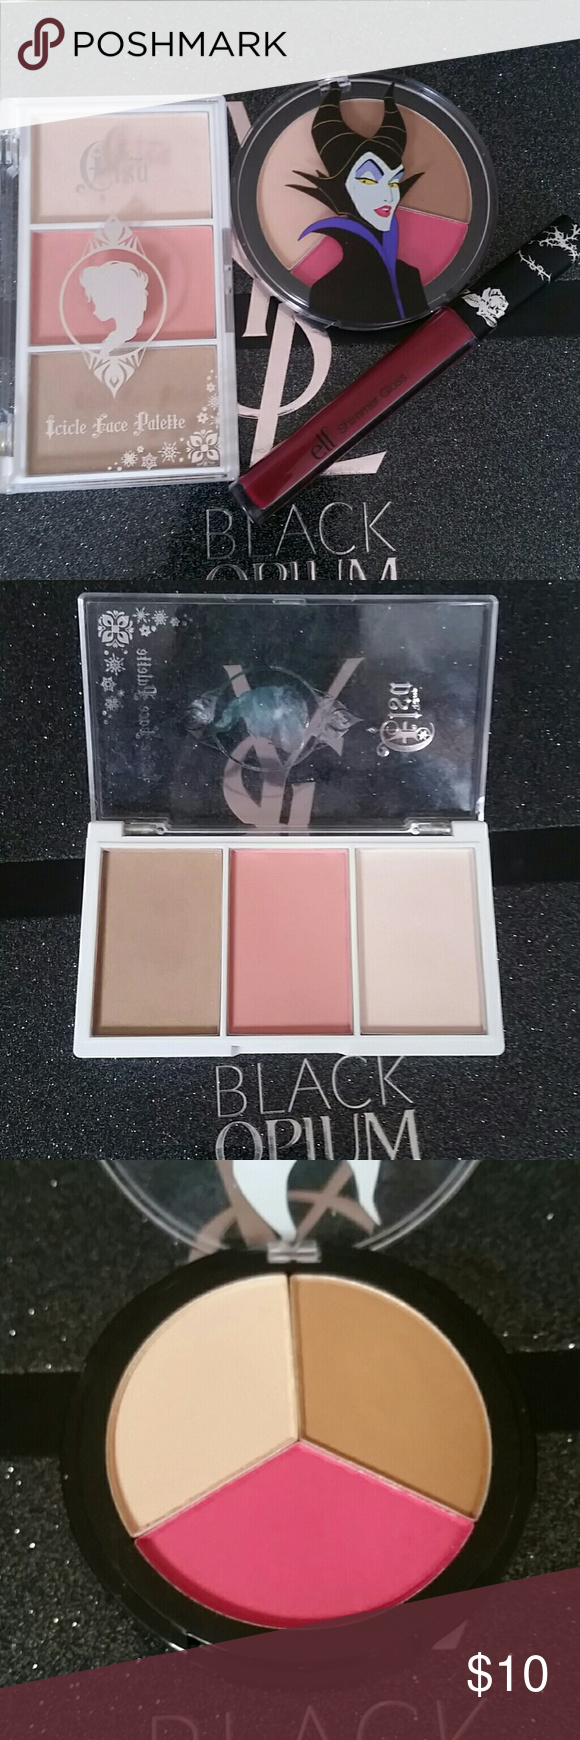 Ltd Disney Makeup Bundle Elsa by Disney icicle face palette: highlighter, blush, bronzer (swatched only for review) Ltd   Malificent by Disney blush, bronzer, highlighter palette (swatched only for review) Ltd   Elf good vs evil lip gloss in kiss & tell (never used or swatched, was part of a kit) ltd.   Everything that can be, was sanitized with alcohol Disney Makeup Blush